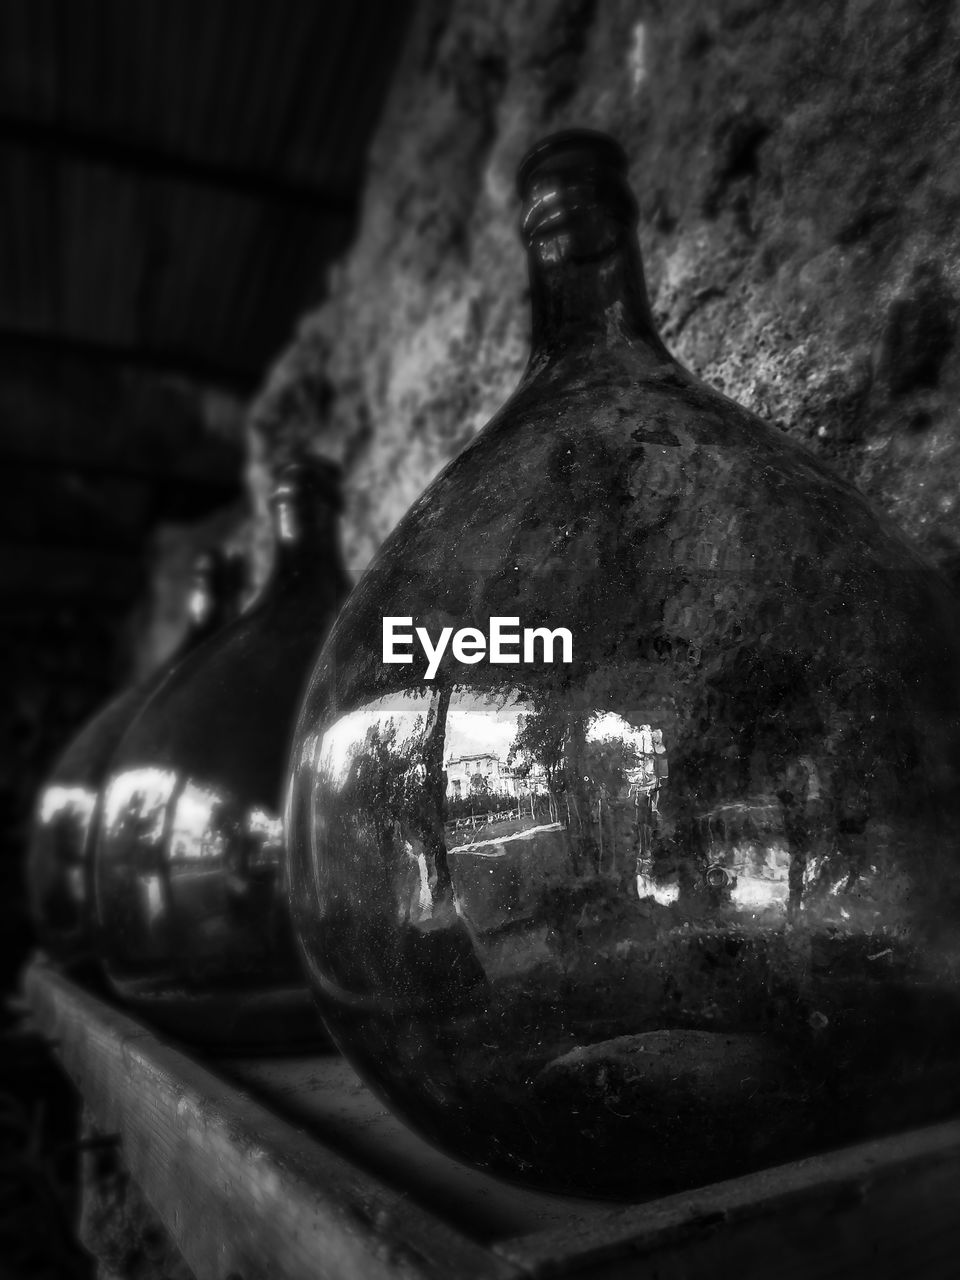 bottle, indoors, container, no people, still life, close-up, old, focus on foreground, glass - material, drink, transparent, wall - building feature, single object, alcohol, wine bottle, food and drink, wine, metal, refreshment, architecture